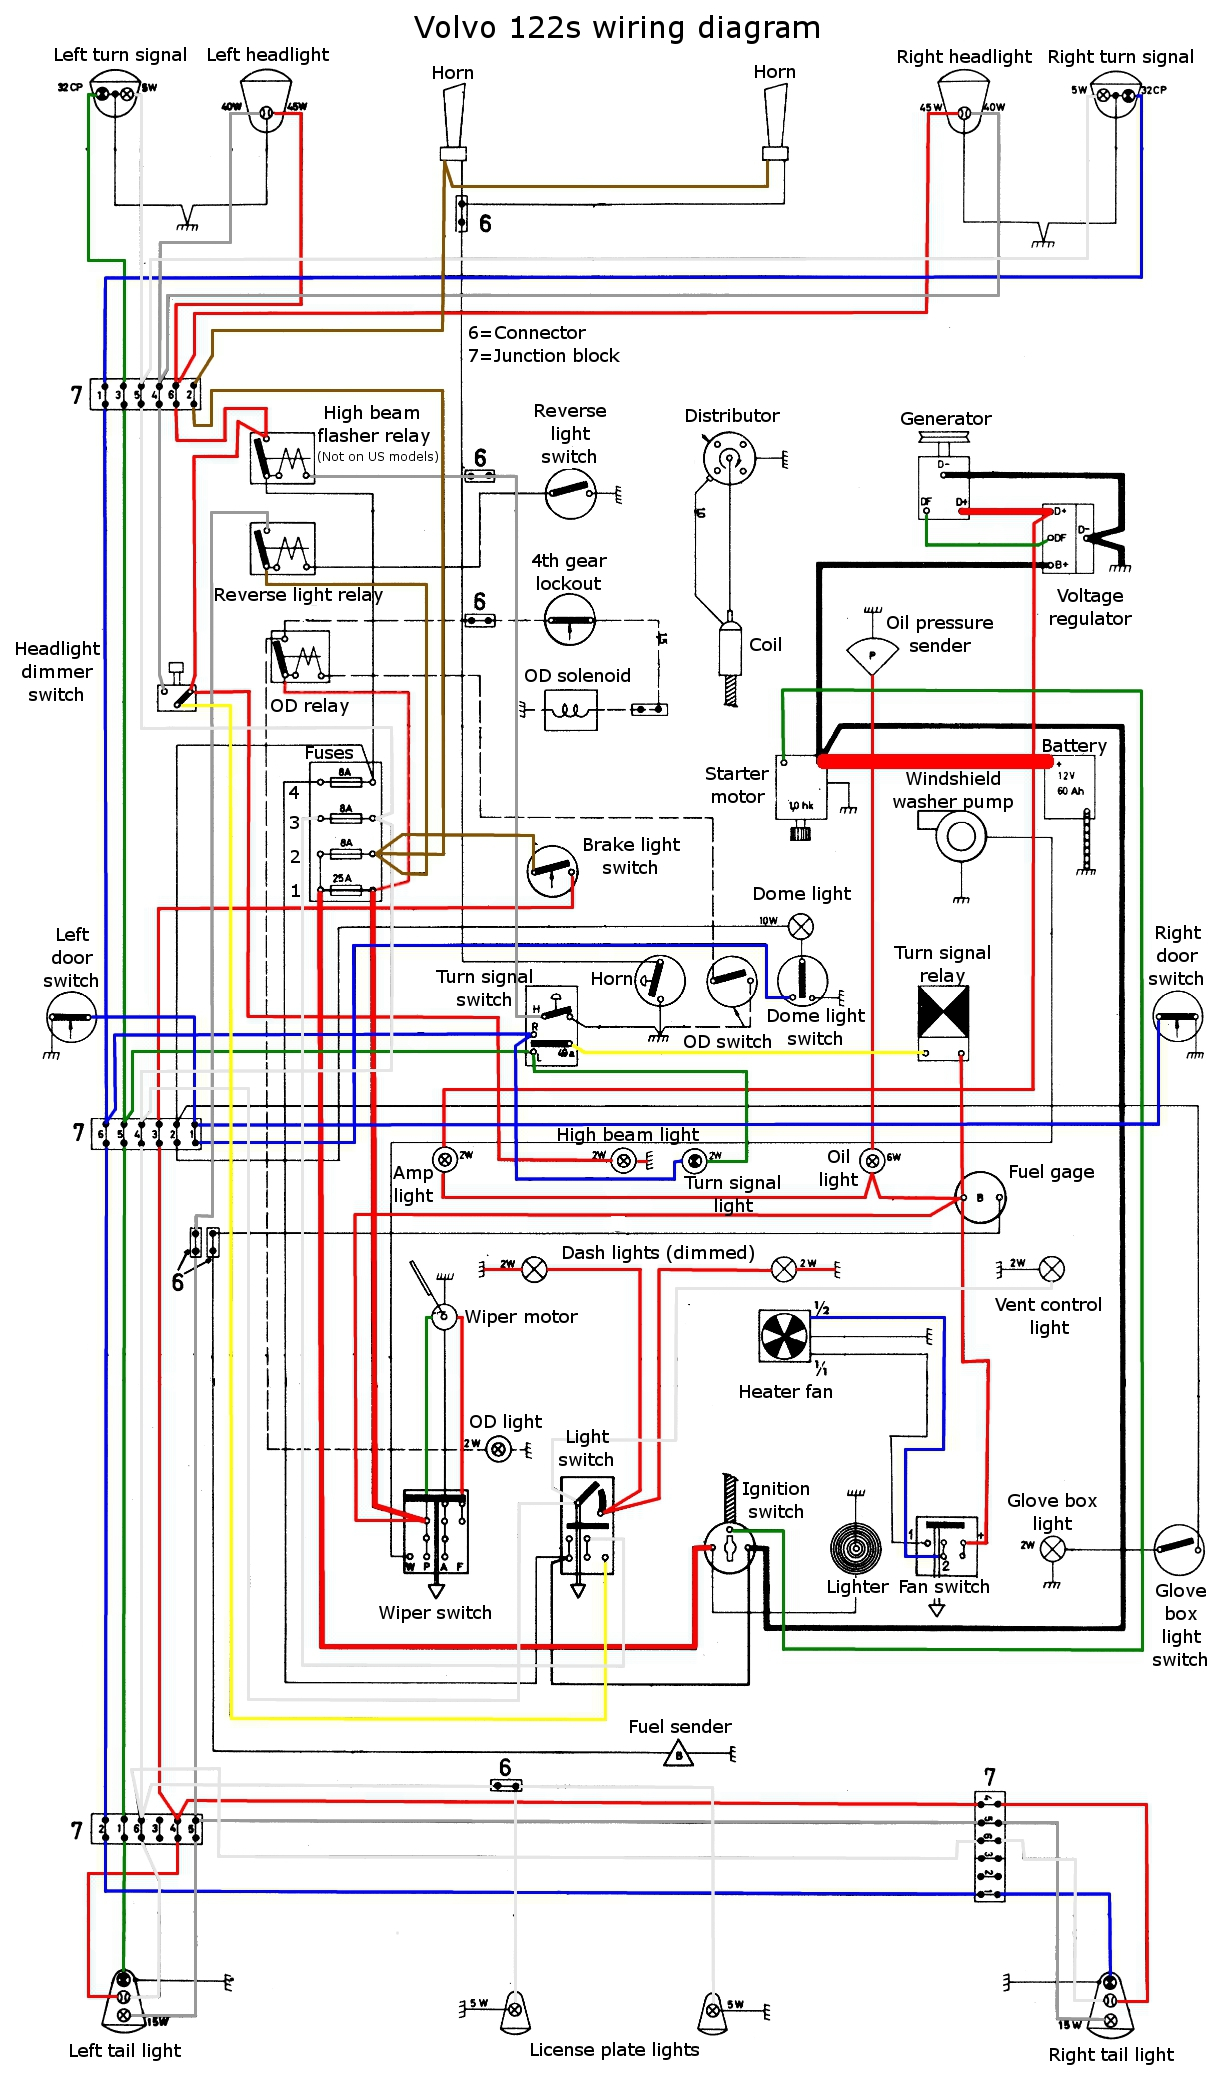 122 wiring diagram color wiring gremlins volvo xc70 wiring diagram at panicattacktreatment.co